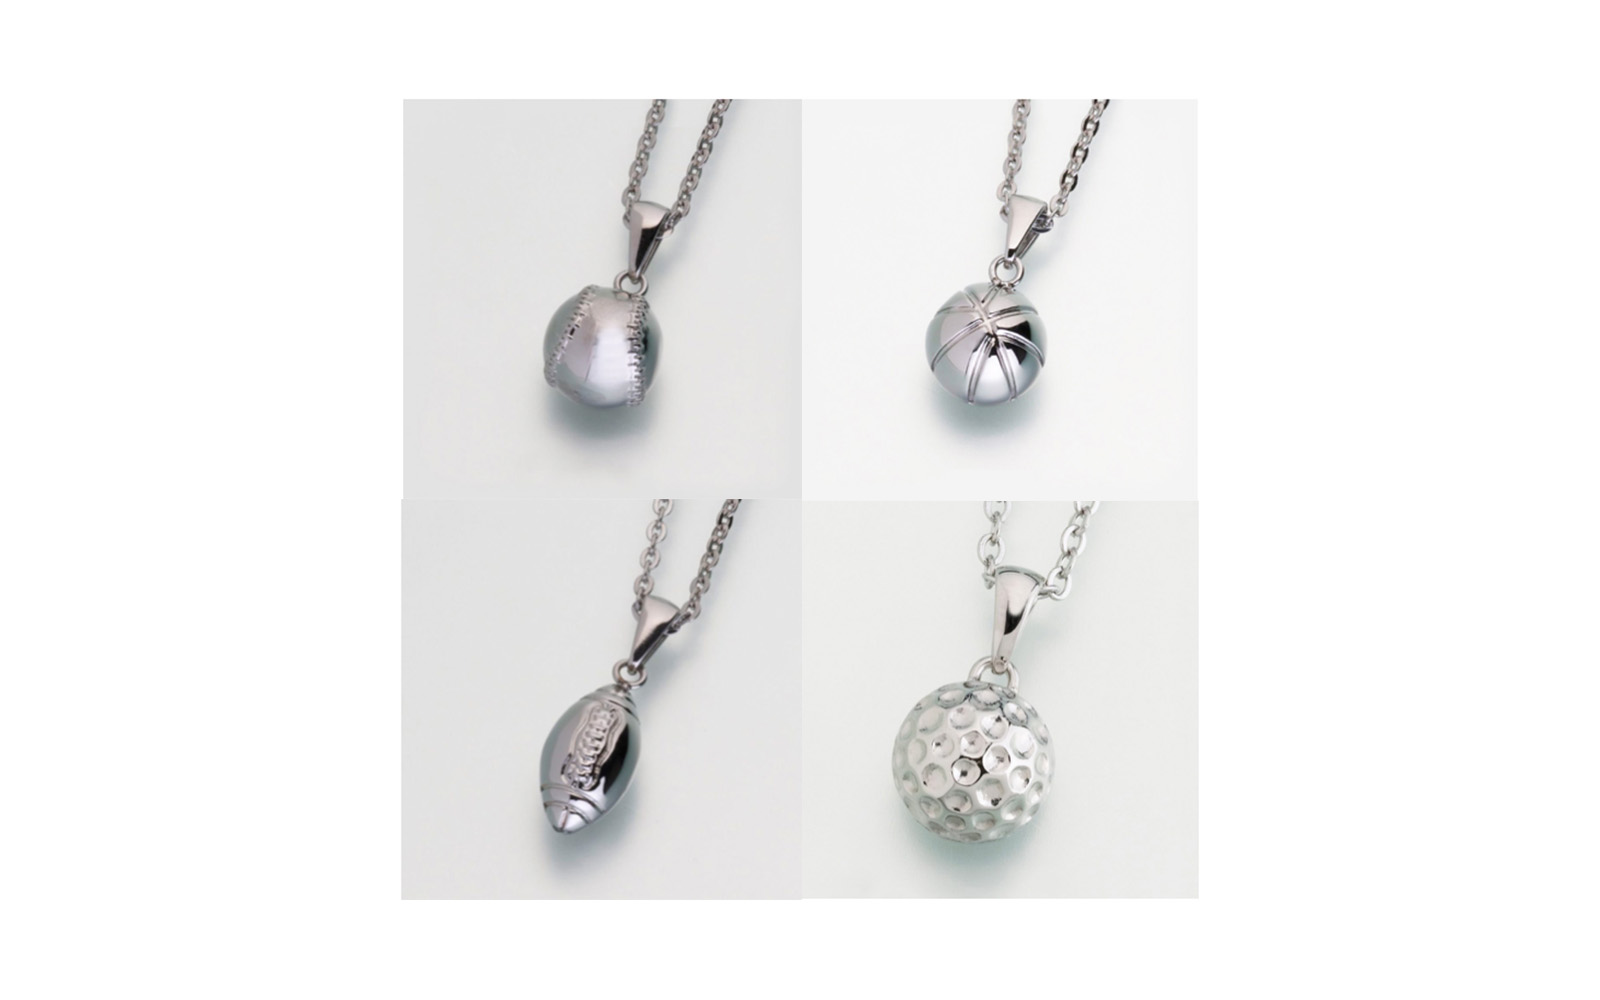 """Stainless Steel Baseball, Basketball, Football and Golfball w/Chain Urn Pendants   These pendants all come with a 24"""" box stainless steel chain. Both the baseball, basketball and golfball measure 1/2""""H x 1/2""""W and the football measures 5/8""""H x 3/8""""W. They all have a threaded opening in the back to fill with ashes or hair of your beloved pet.  $215"""